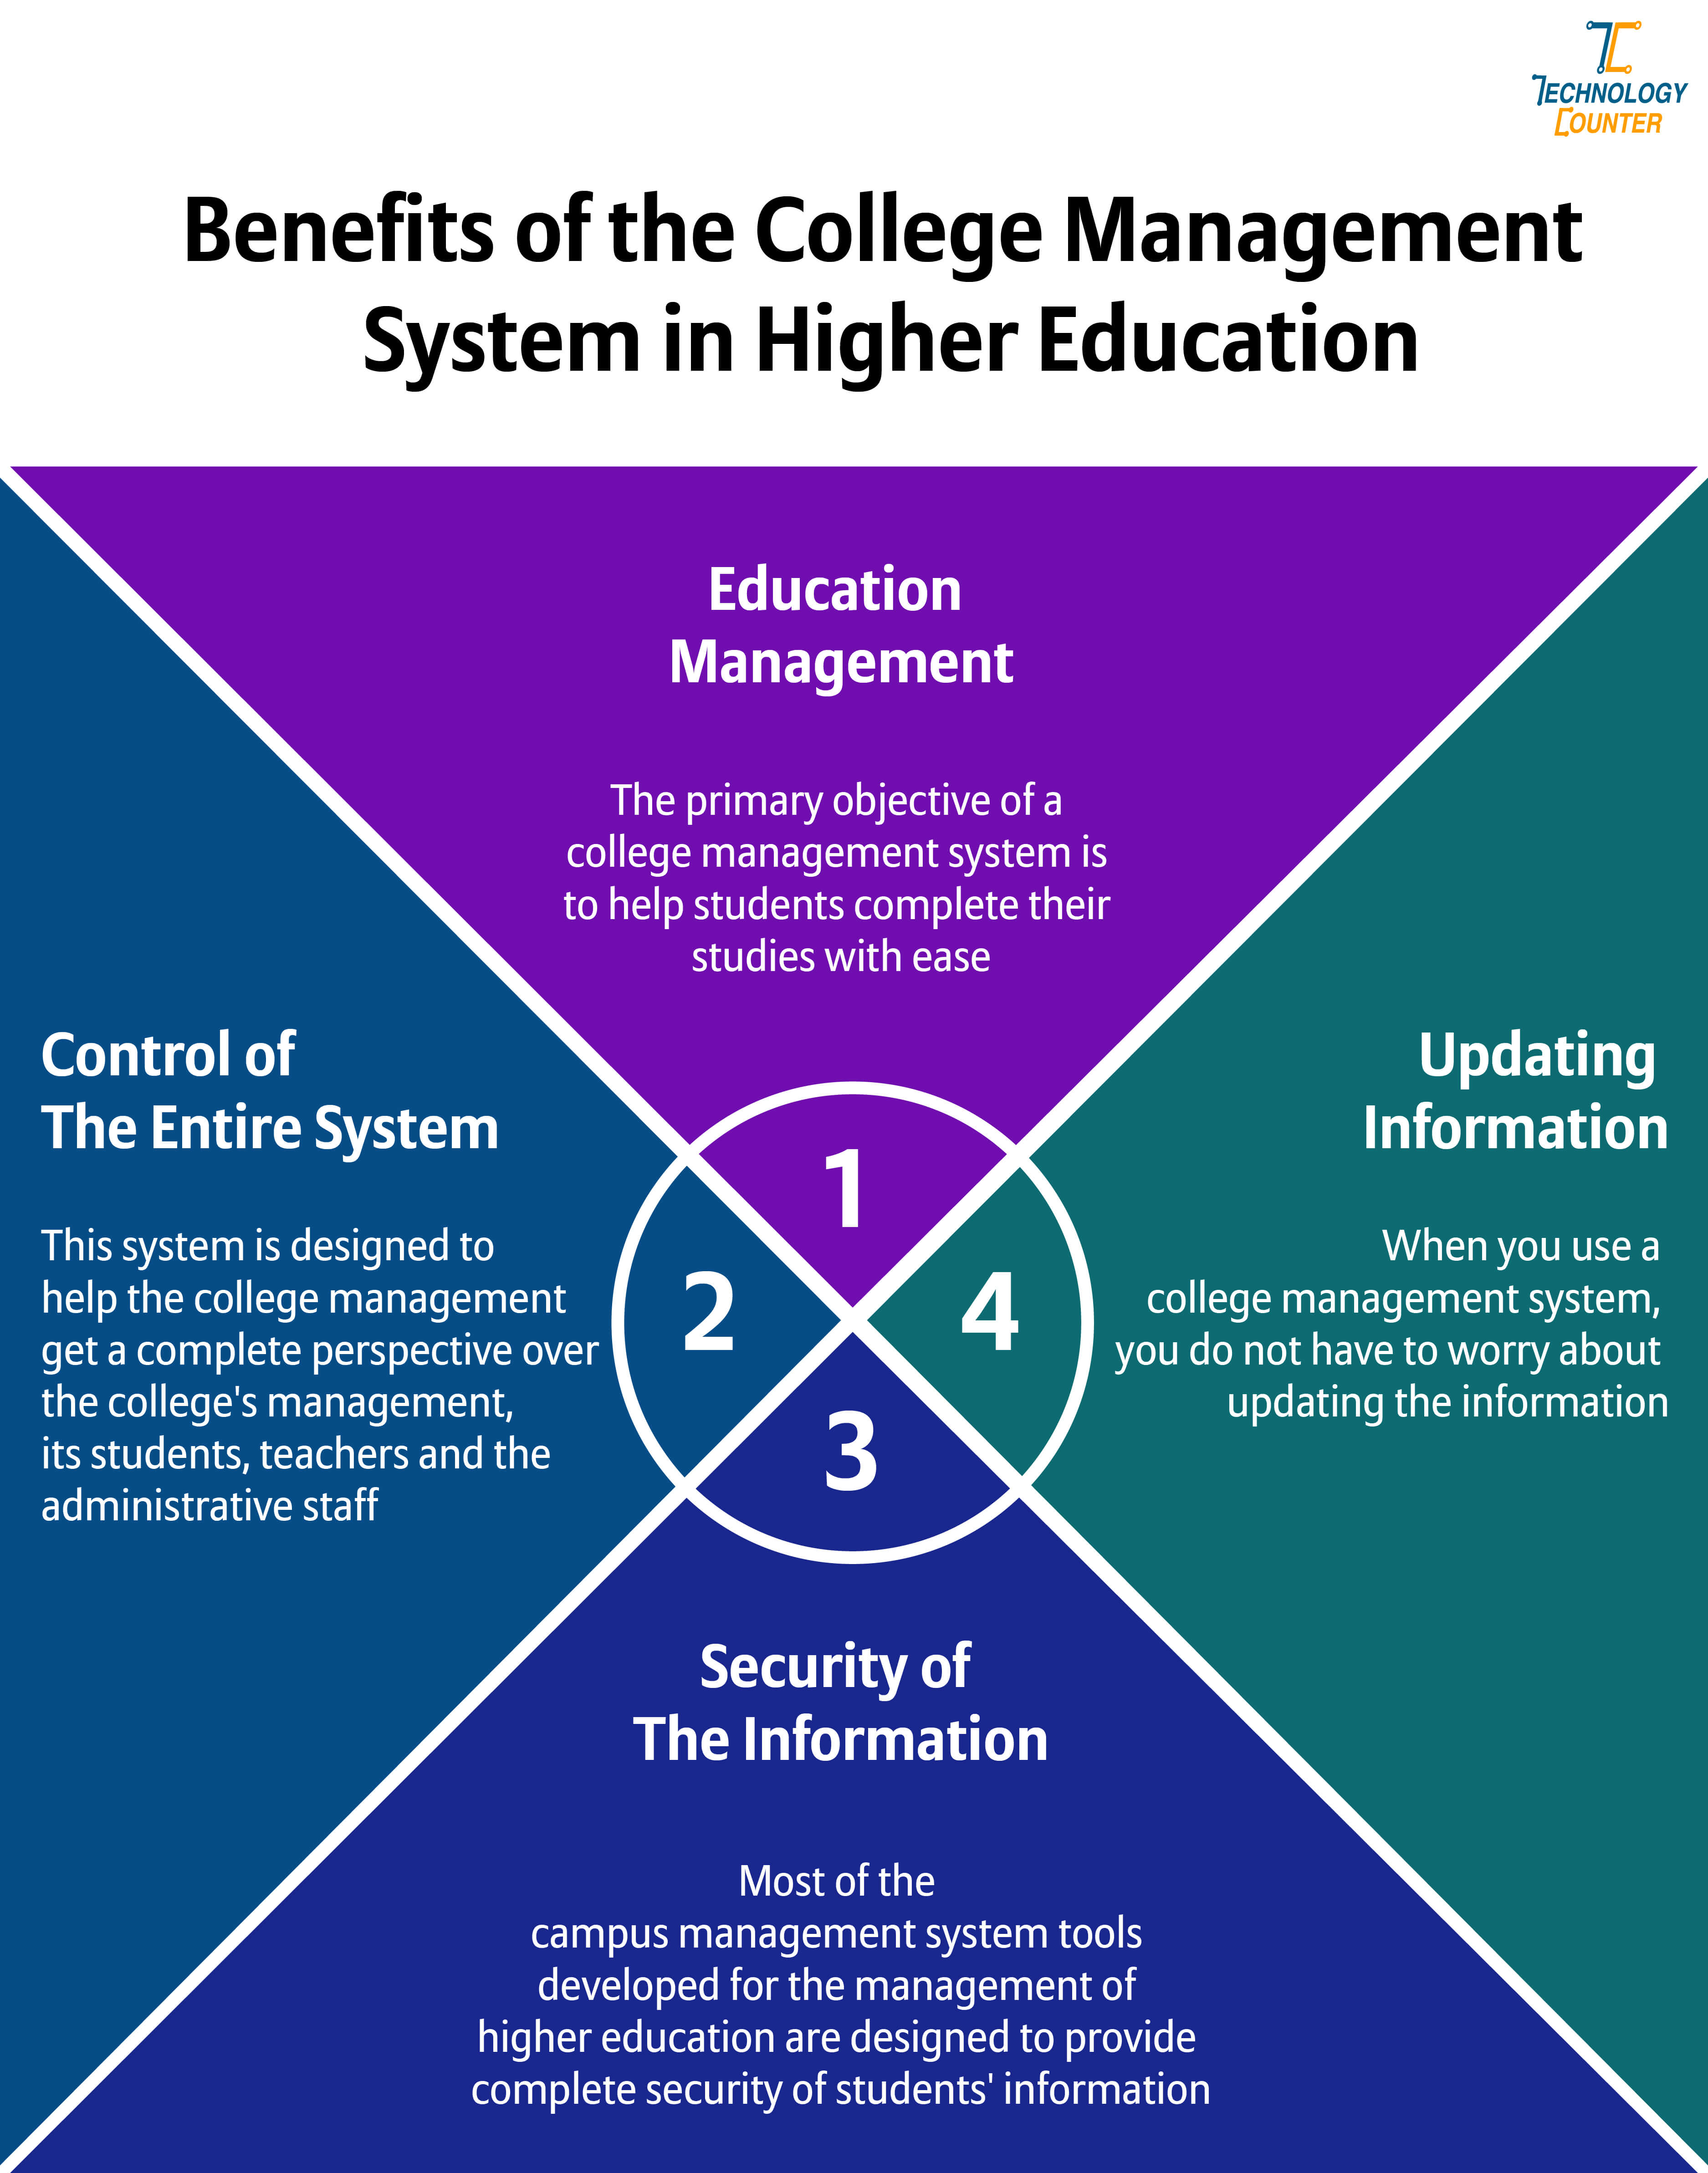 Benefits of the College Management System in Higher Education